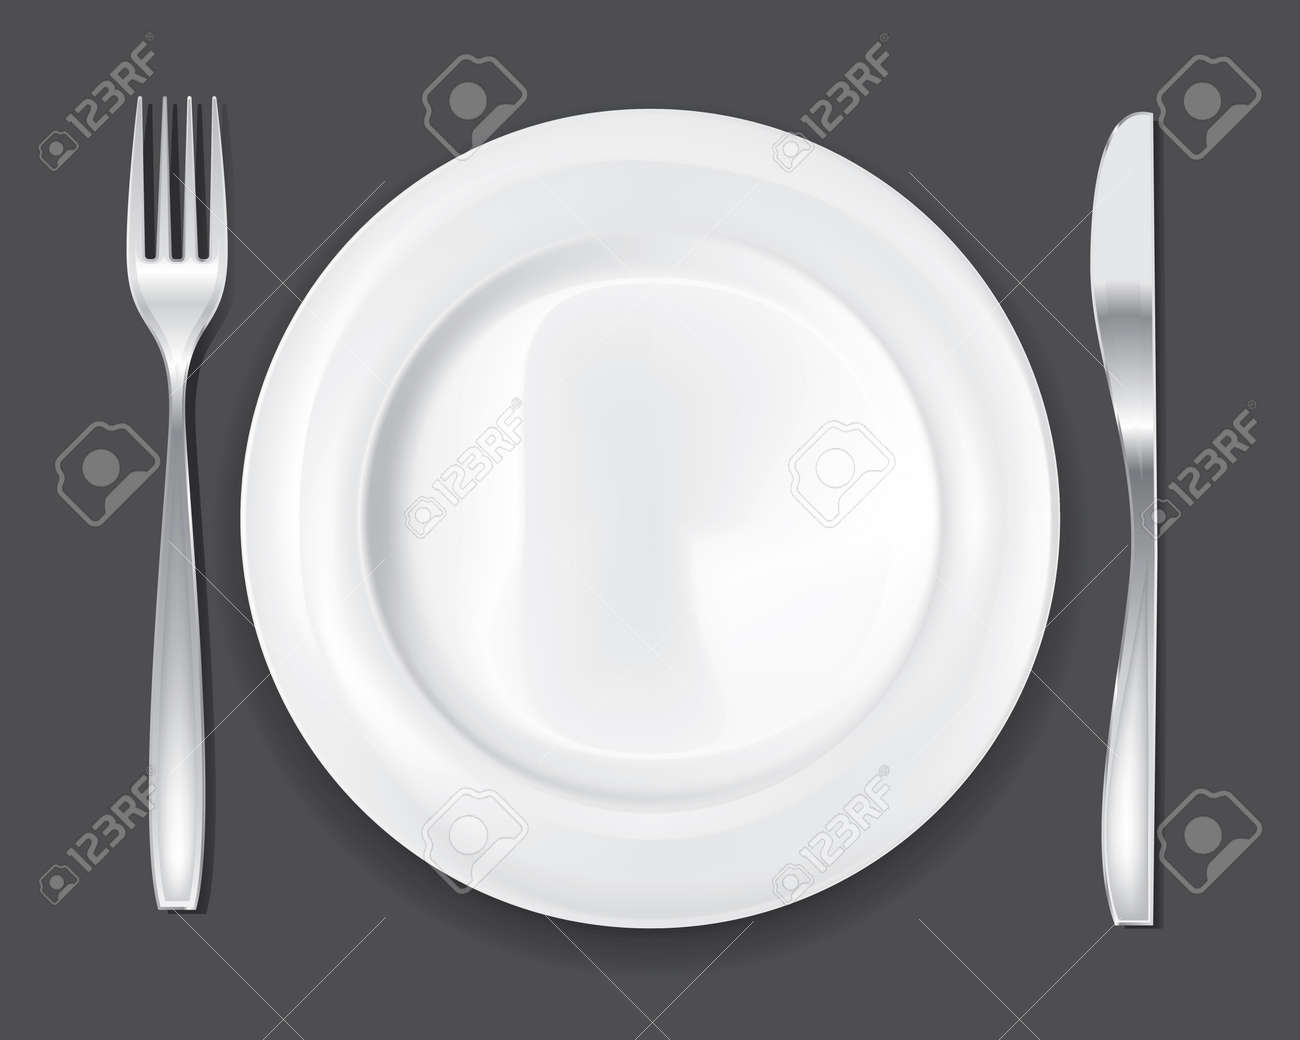 An empty white dish with knife and fork on a table - Empty Dinner Plate Drawing The Knife And Fork Set Stock Vector 11622343